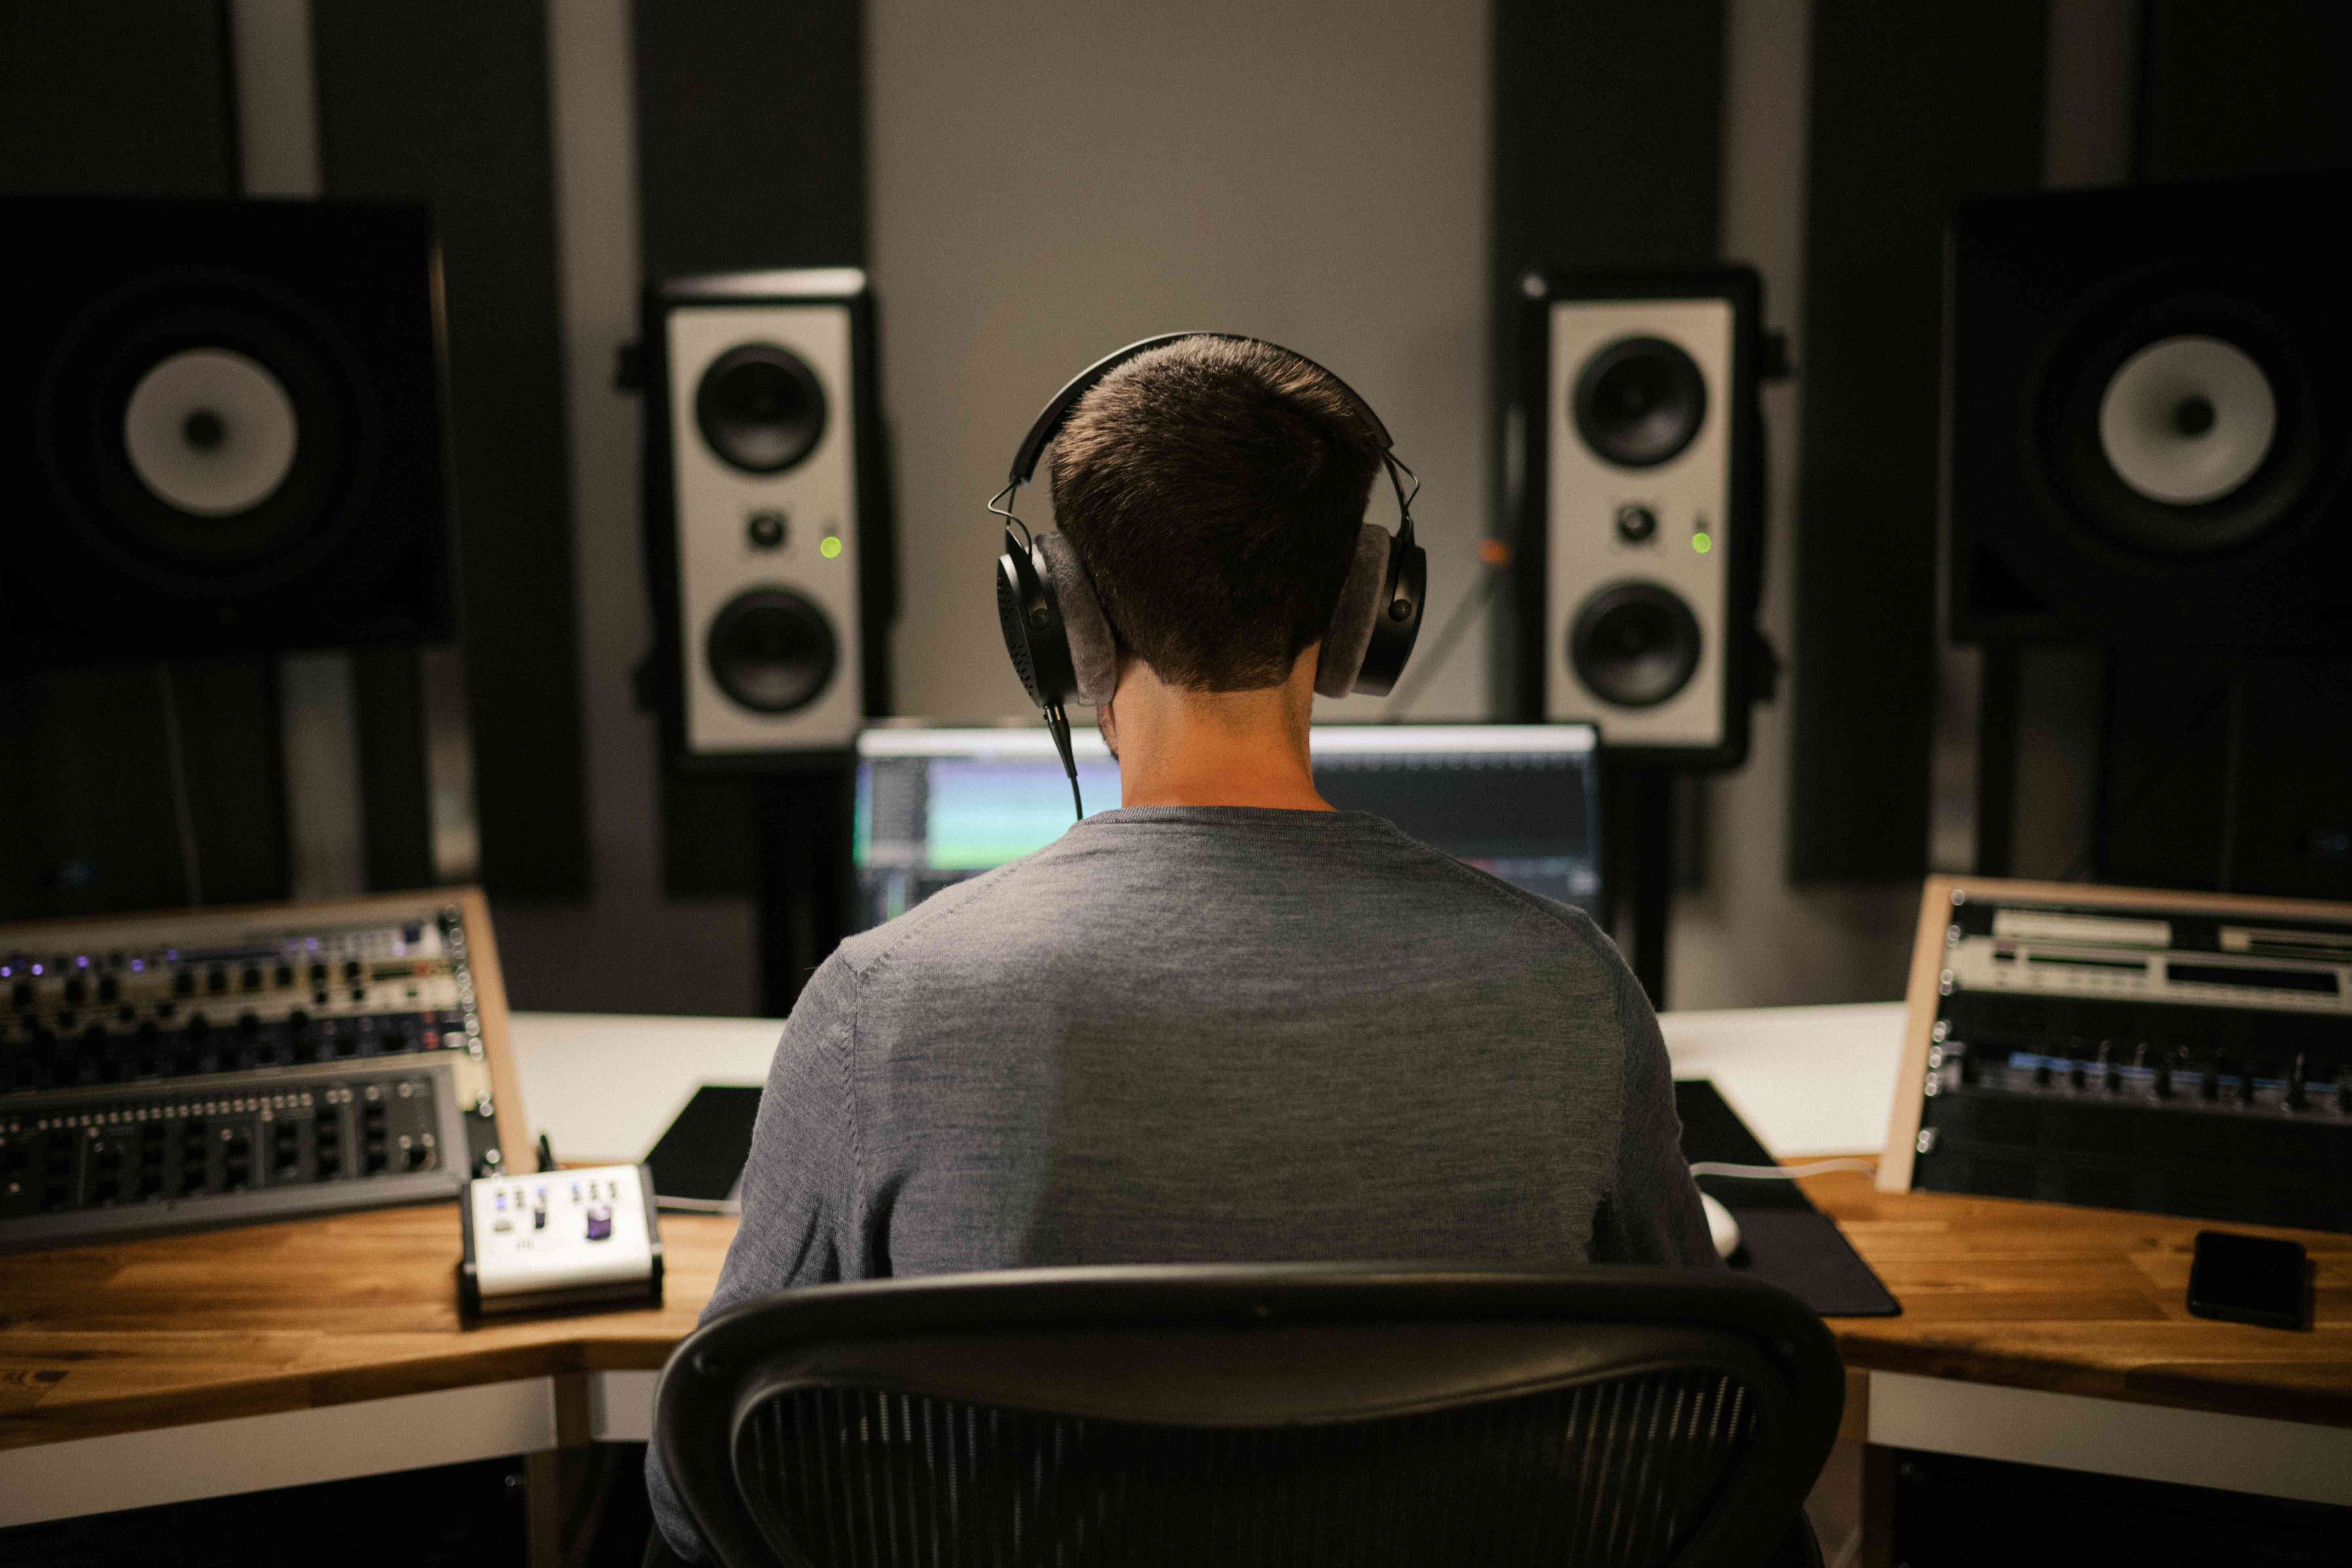 View from behind of someone using the Beyerdynamic DT 900 Pro X headphones.